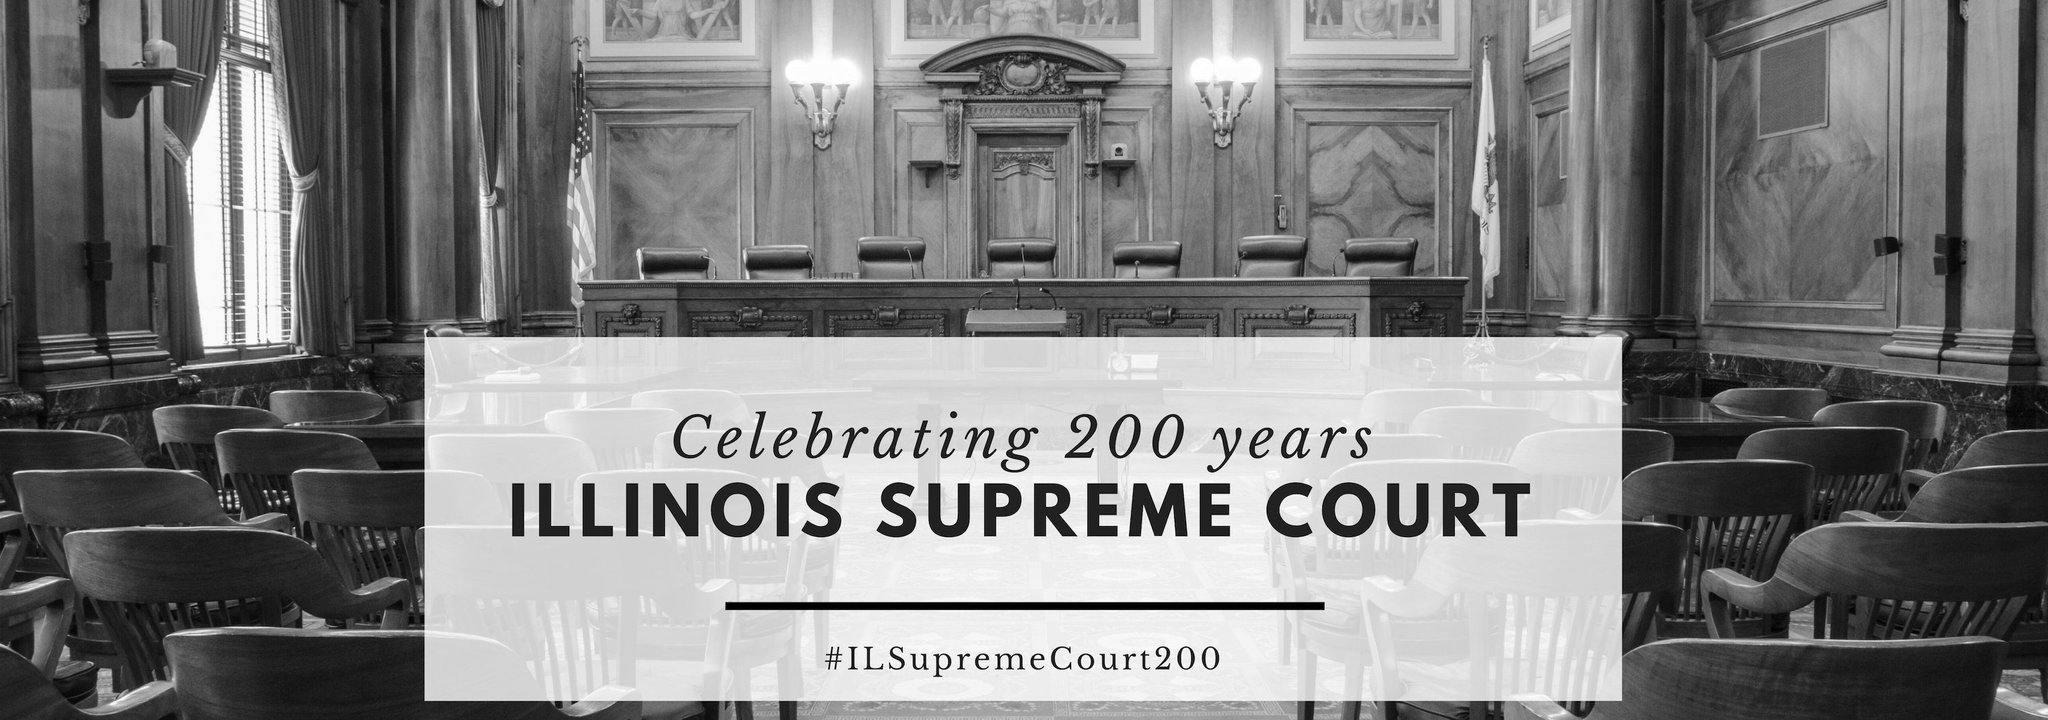 The Illinois General Assembly appointed the first four justices to the Illinois Supreme Court on this day in 1818. Join us in celebrating 200 years of the Illinois Supreme Court! #ILSupremeCourt200 https://t.co/FiGCdjBRPp